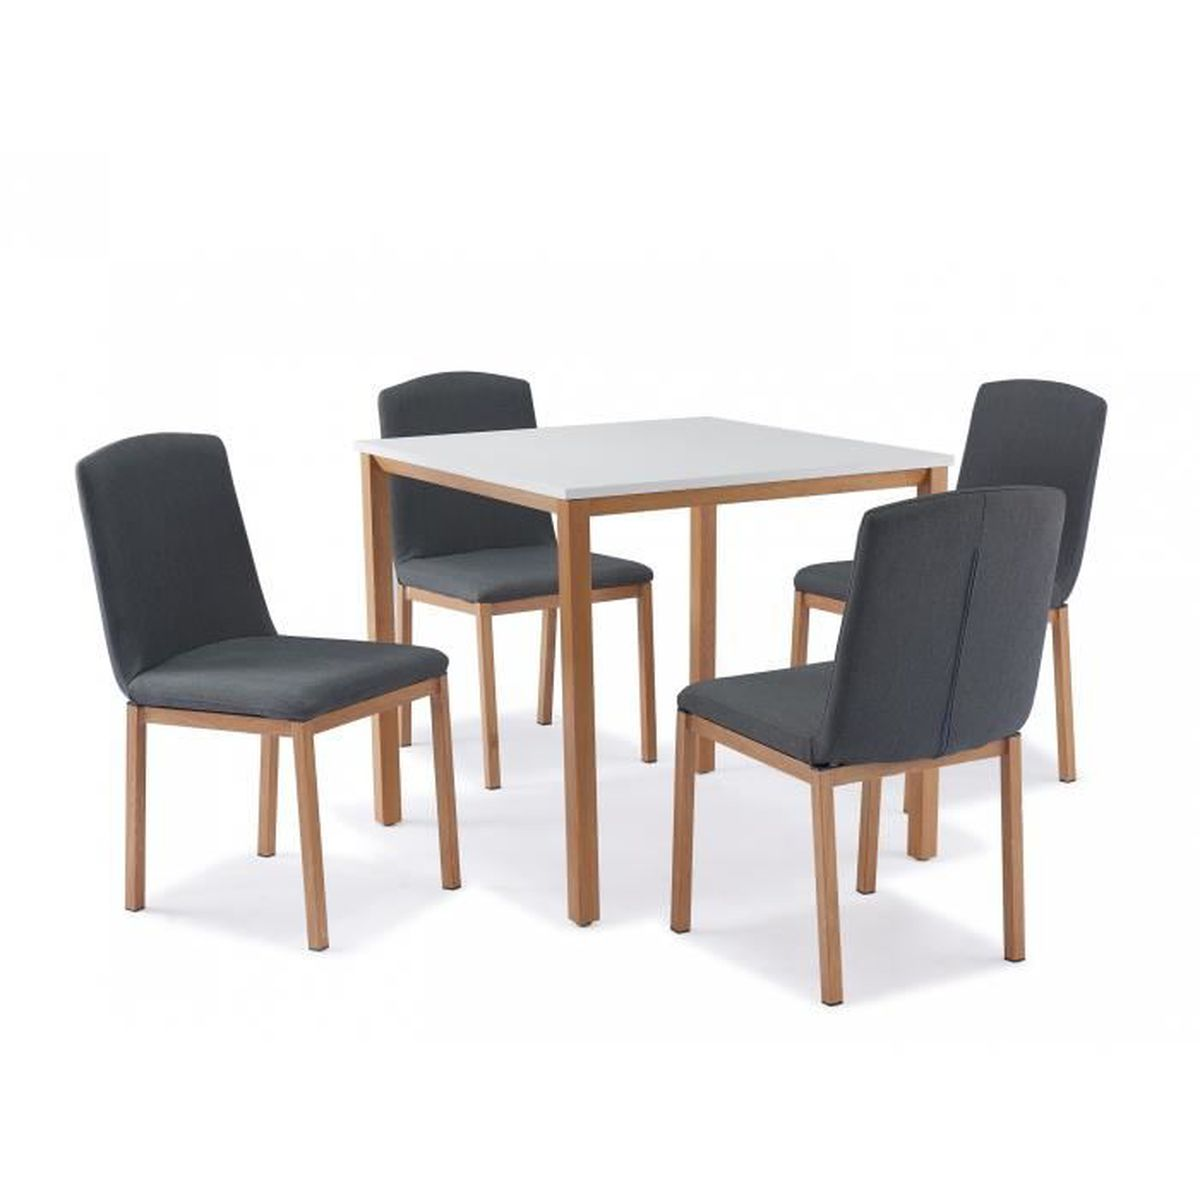 Table carr e 4 chaises scandinave achat vente table for Table scandinave carree